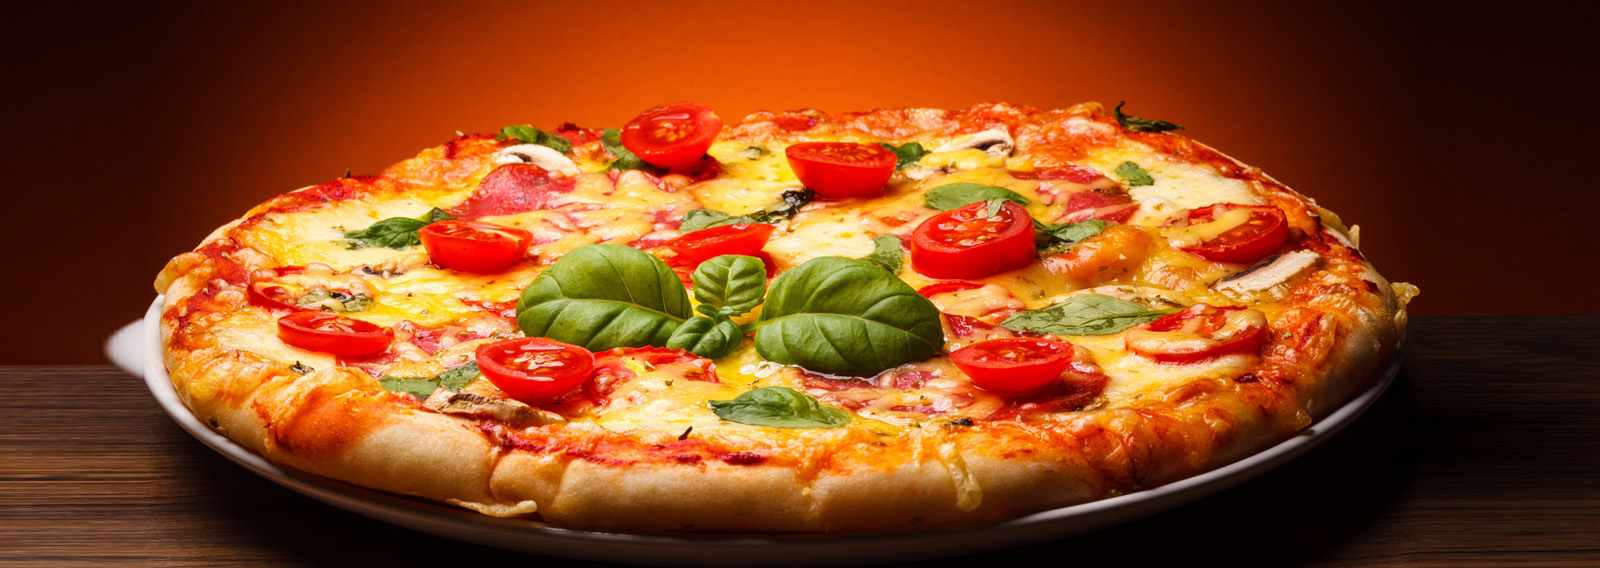 pizzzs